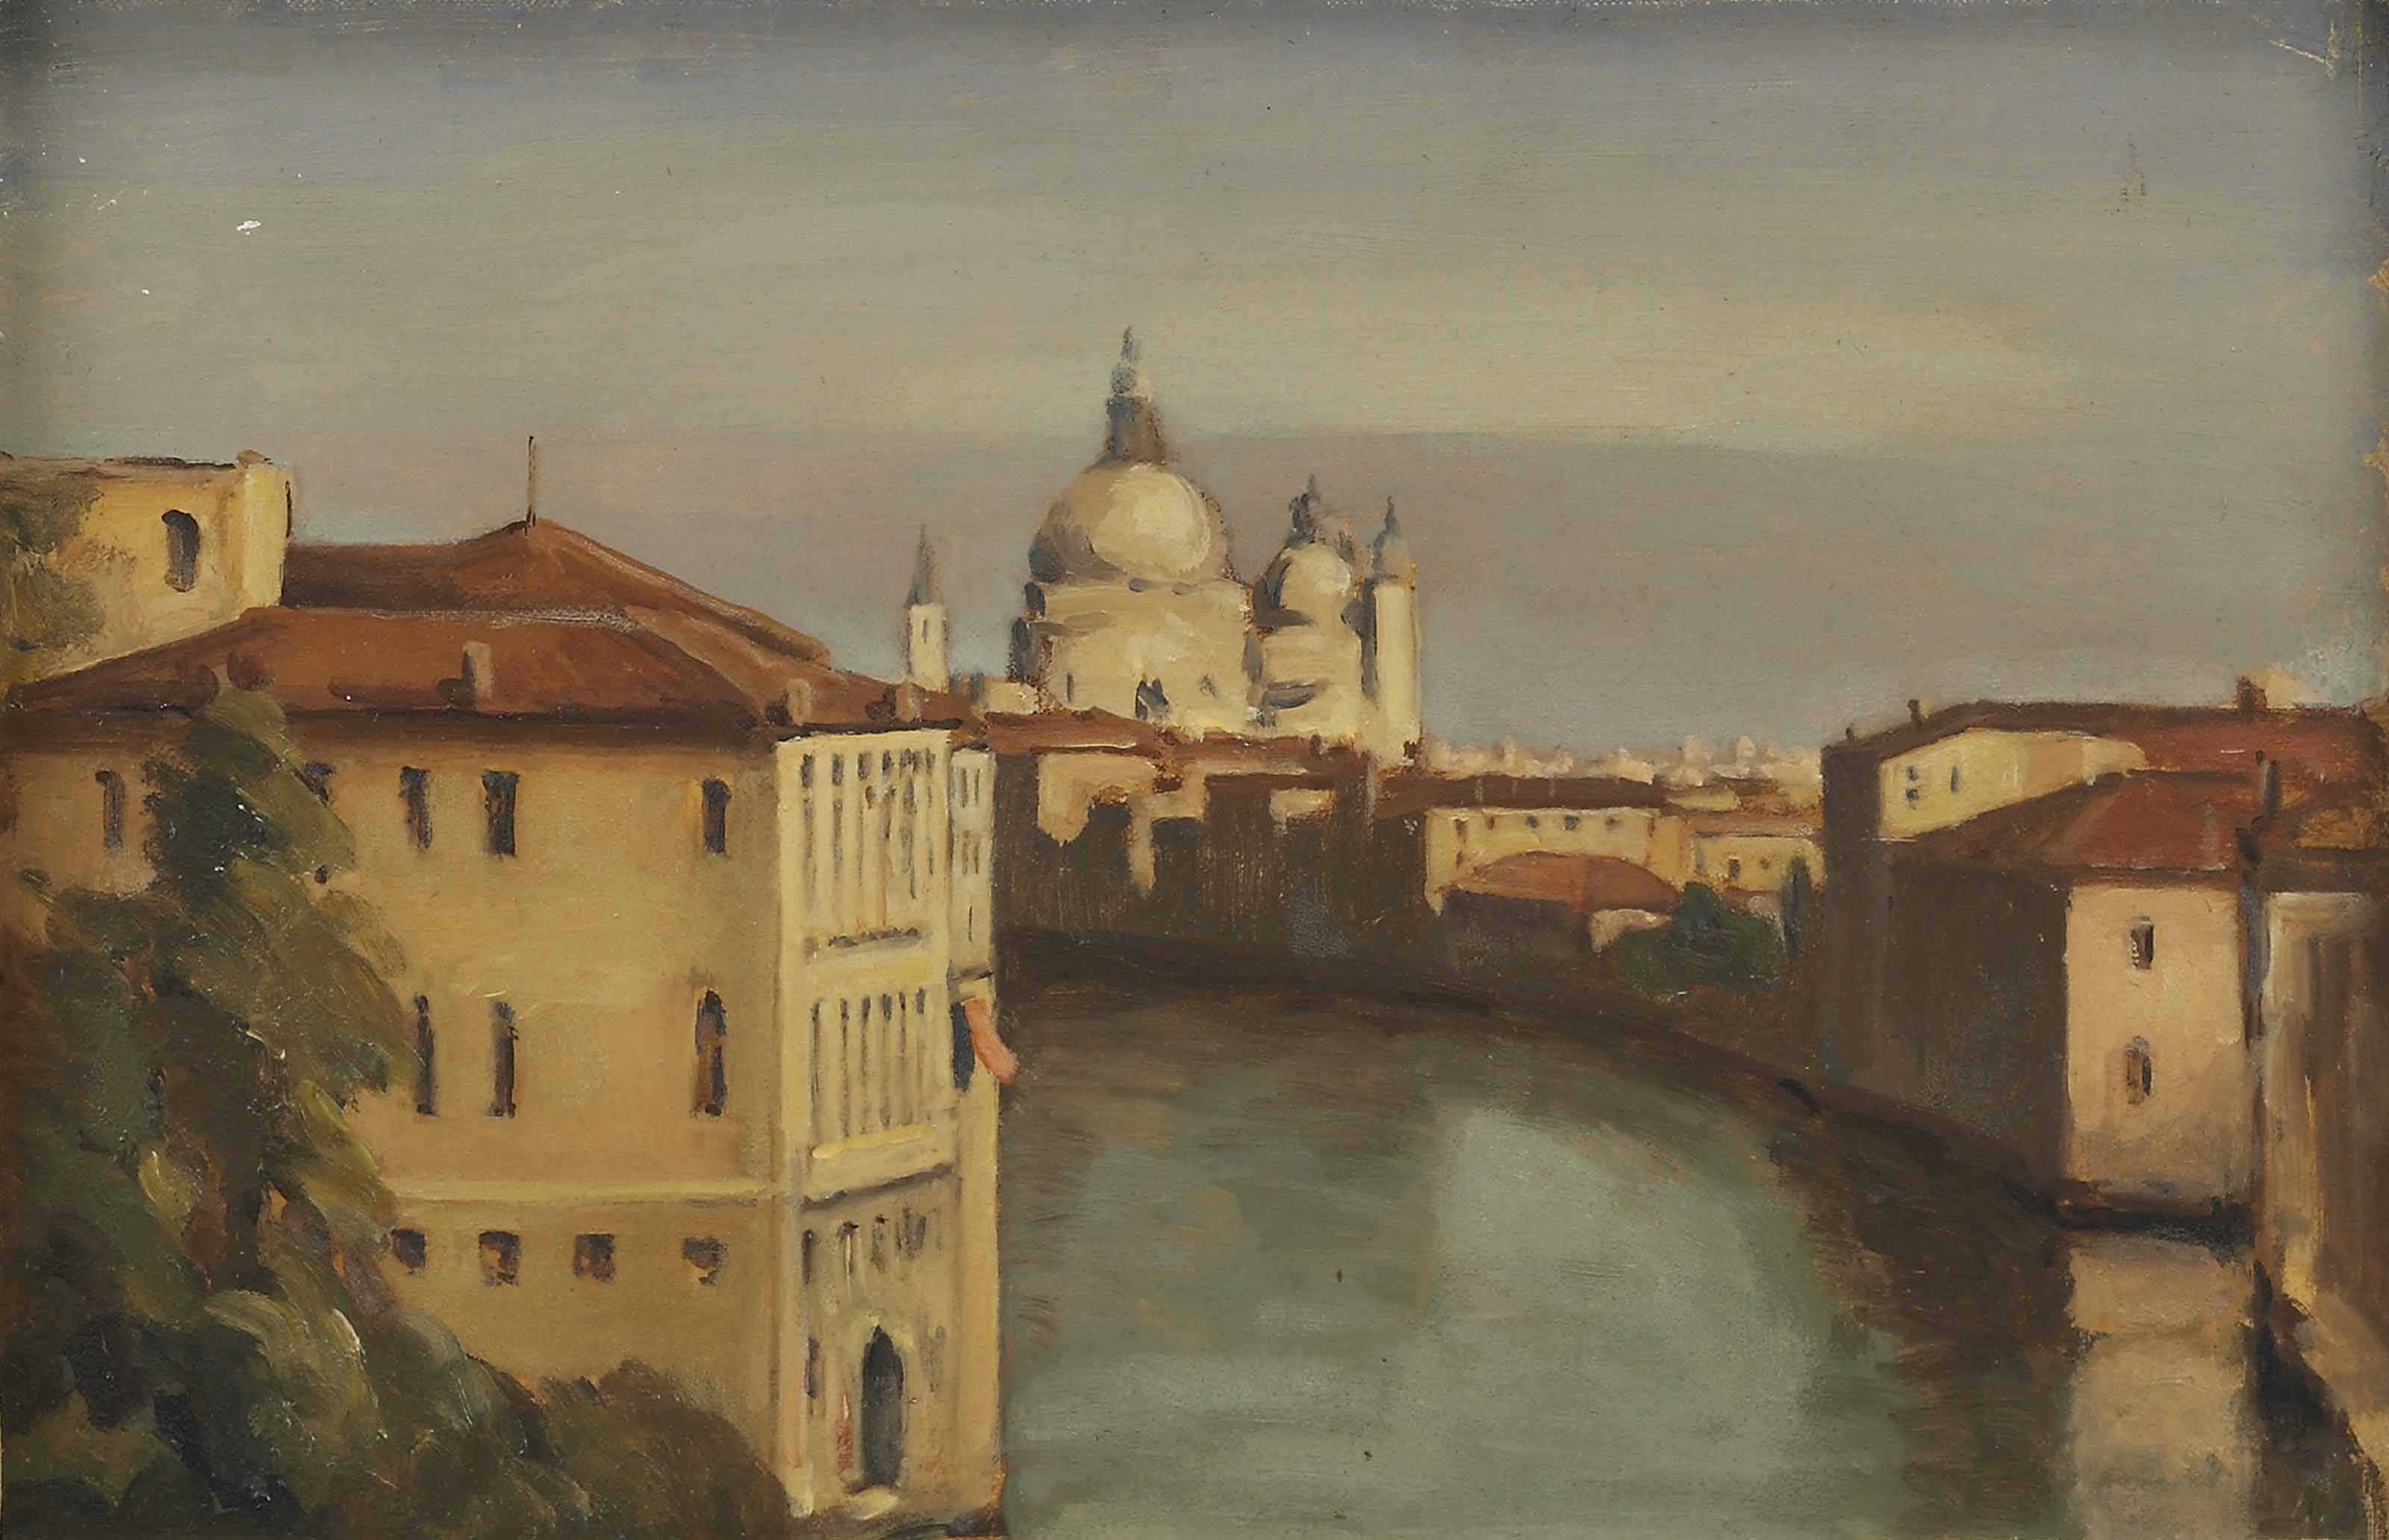 View of Venice looking towards the Basilica of Santa Maria della Salute from the Grand Canal